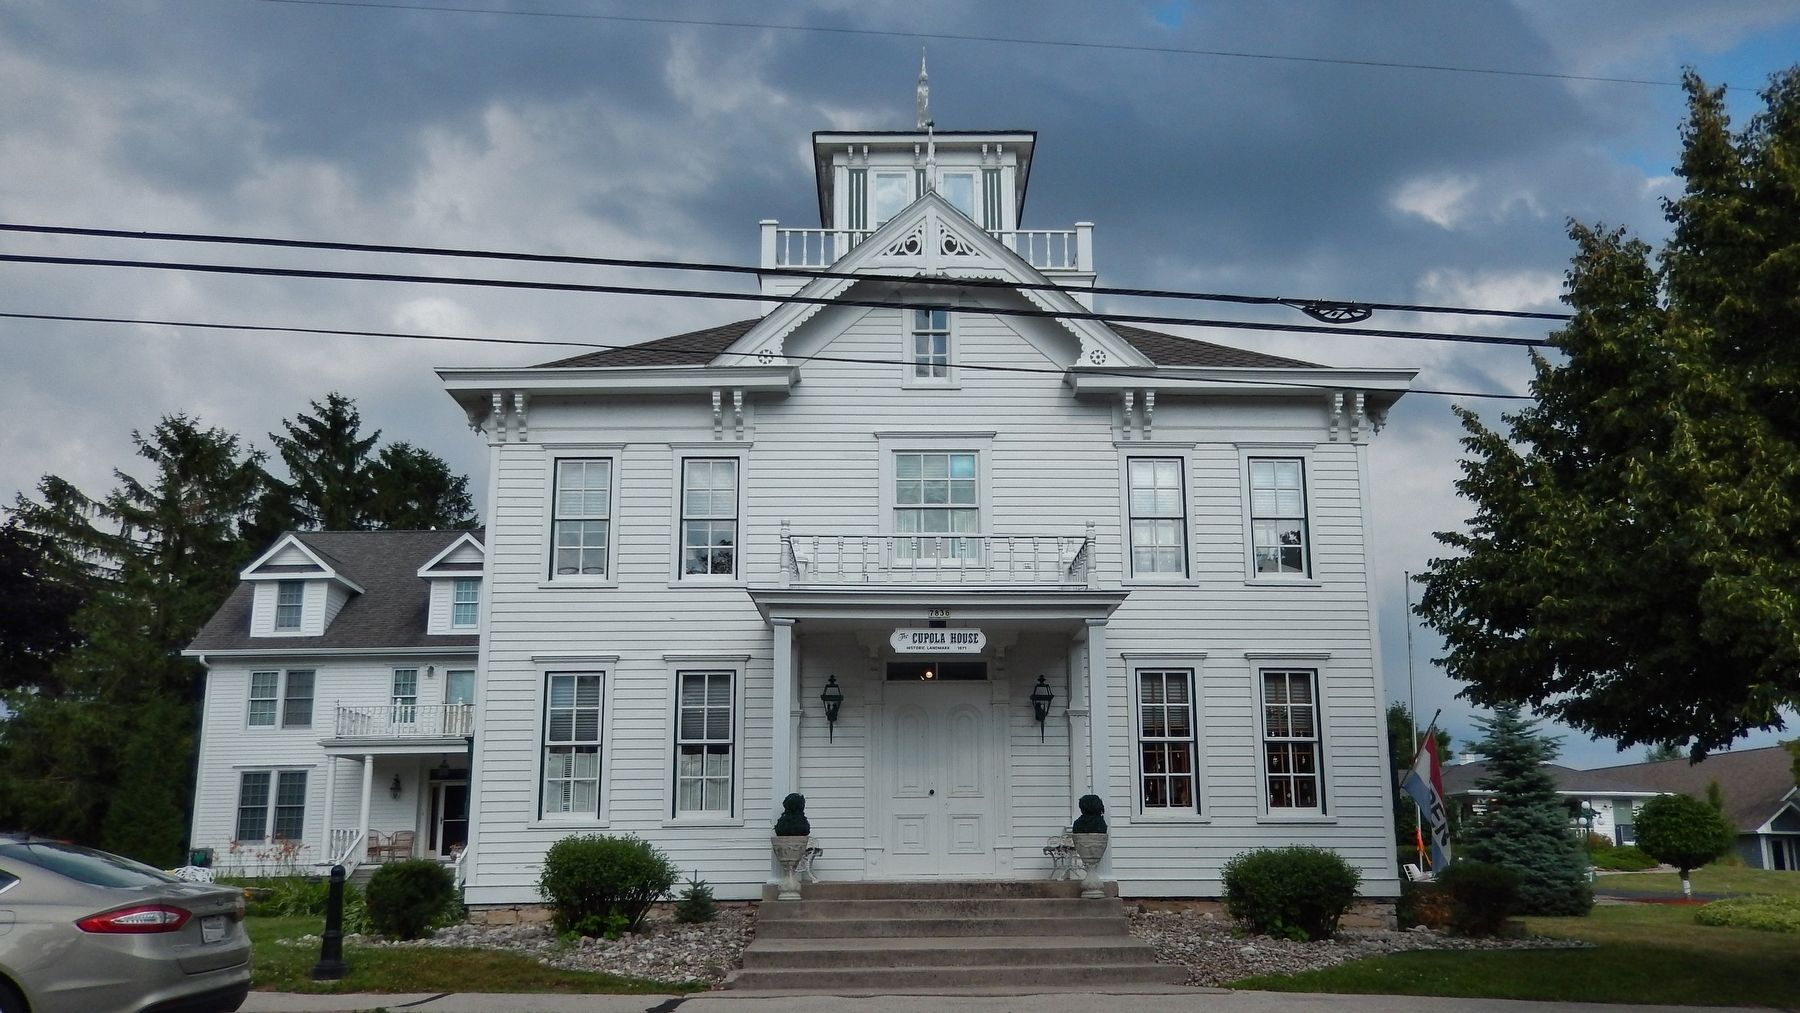 Cupola House (<i>front view from Egg Harbor Drive</i>) image. Click for full size.